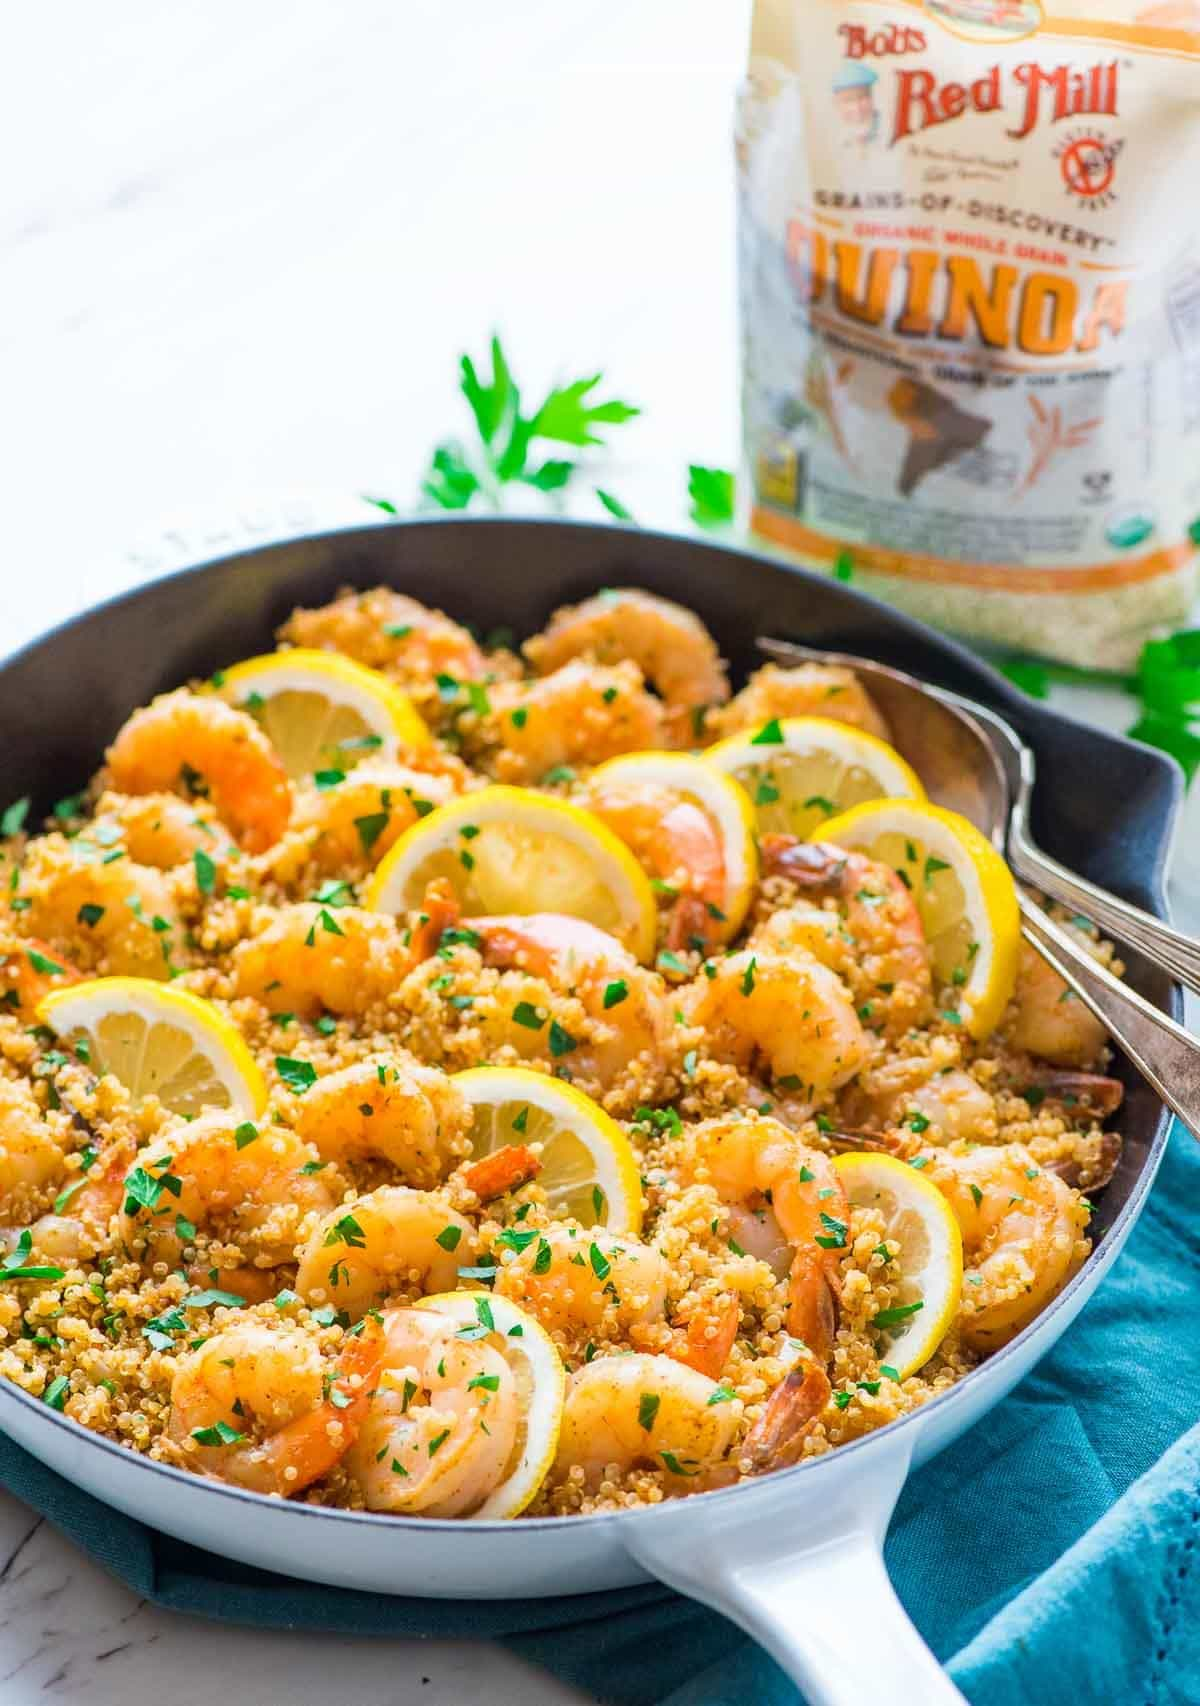 Lemon Garlic Shrimp with Quinoa. Fast, healthy, and delicious! Recipe at wellplated.com | @wellplated